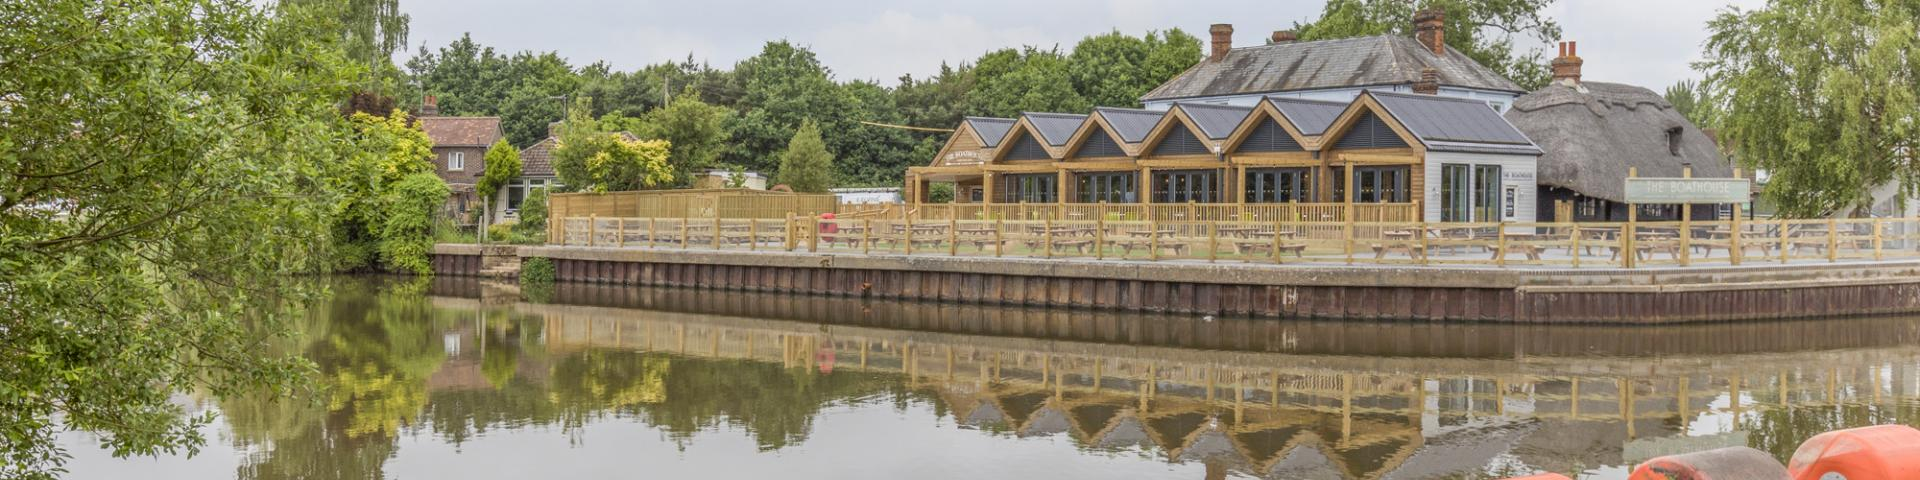 The Boathouse, Yalding, Maidstone